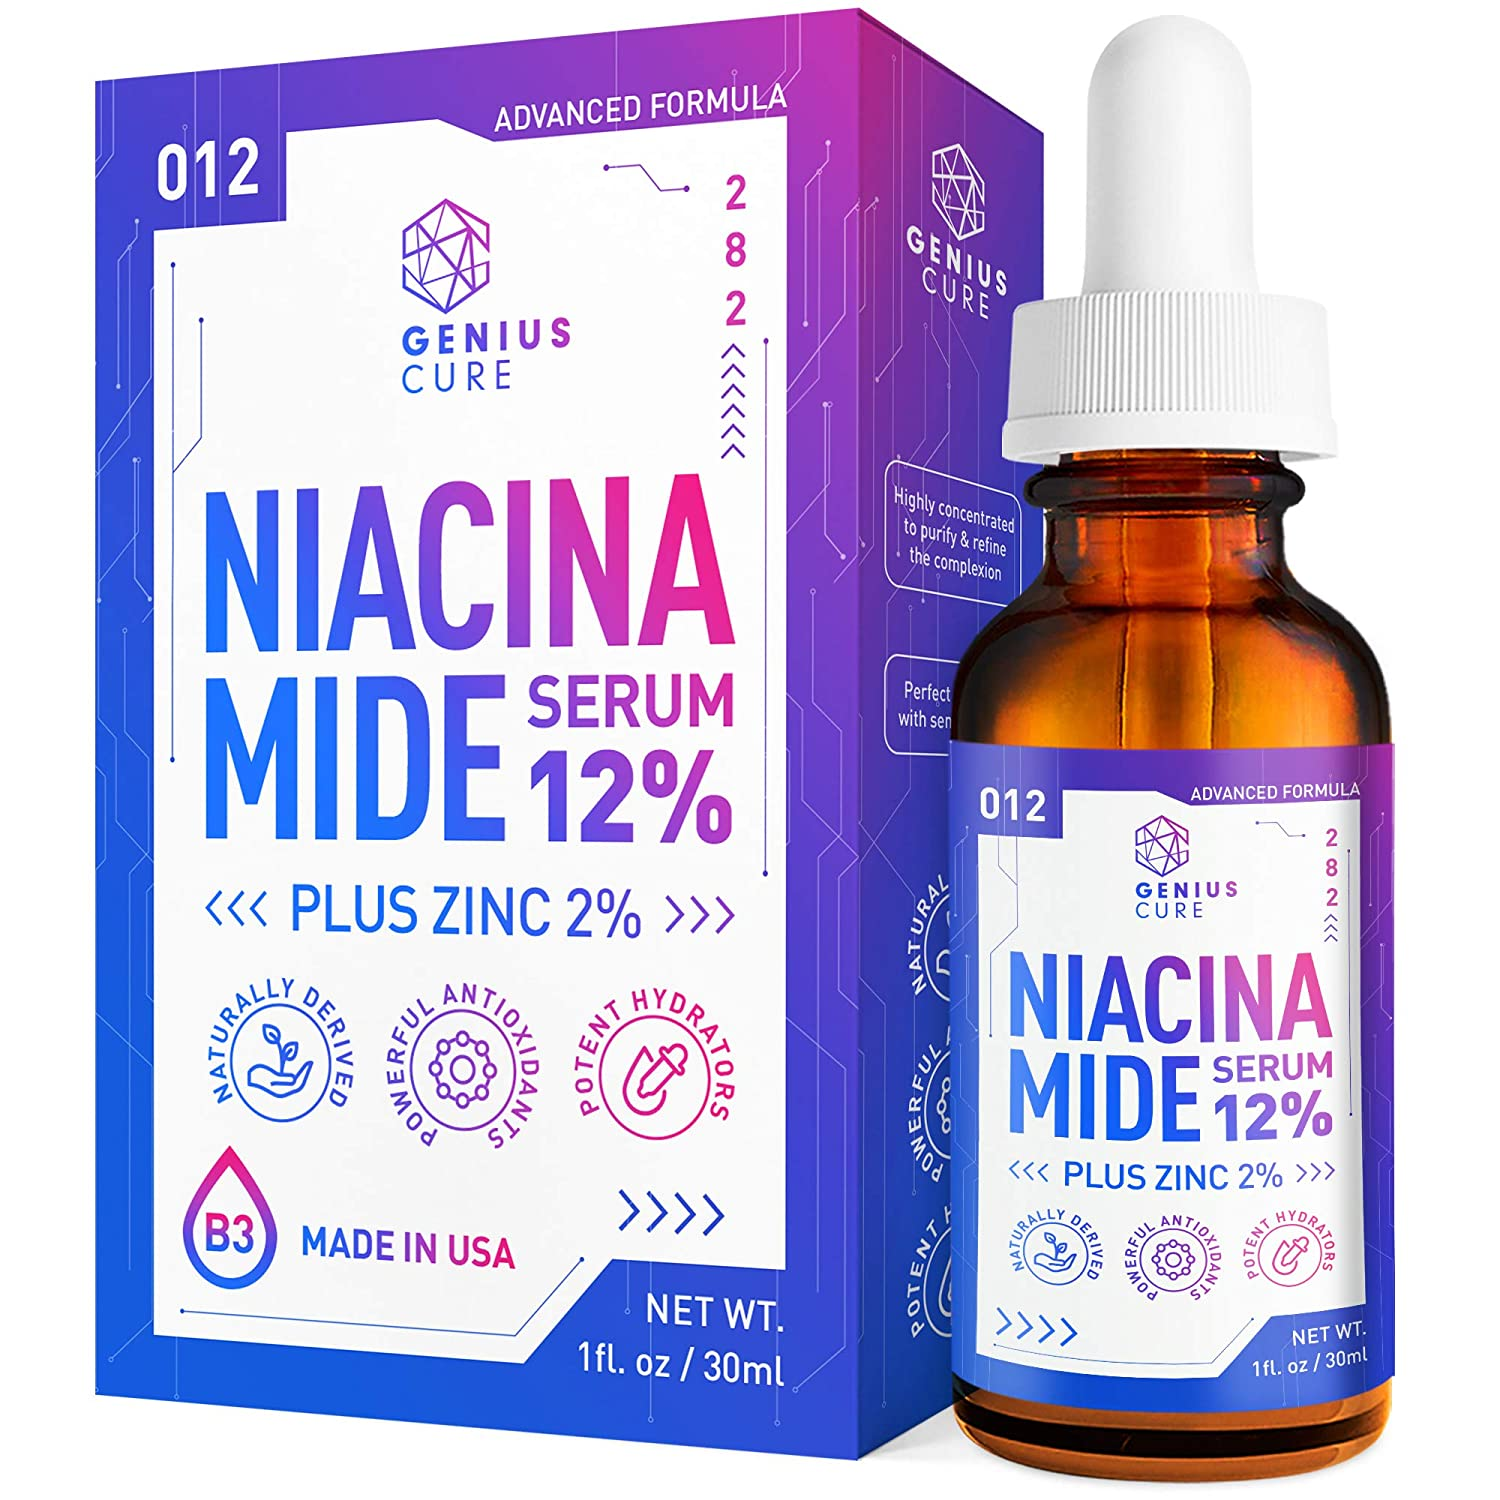 GENIUS Niacinamide 12% Face Serum + 2% Zinc-Vitamin B3 Anti Aging Skin Moisturizer - Vitamin B3 Anti Aging Skin Moisturizer - Diminishes Acne, Breakouts, Wrinkles, Lines, Dark Spot Remover - 1oz